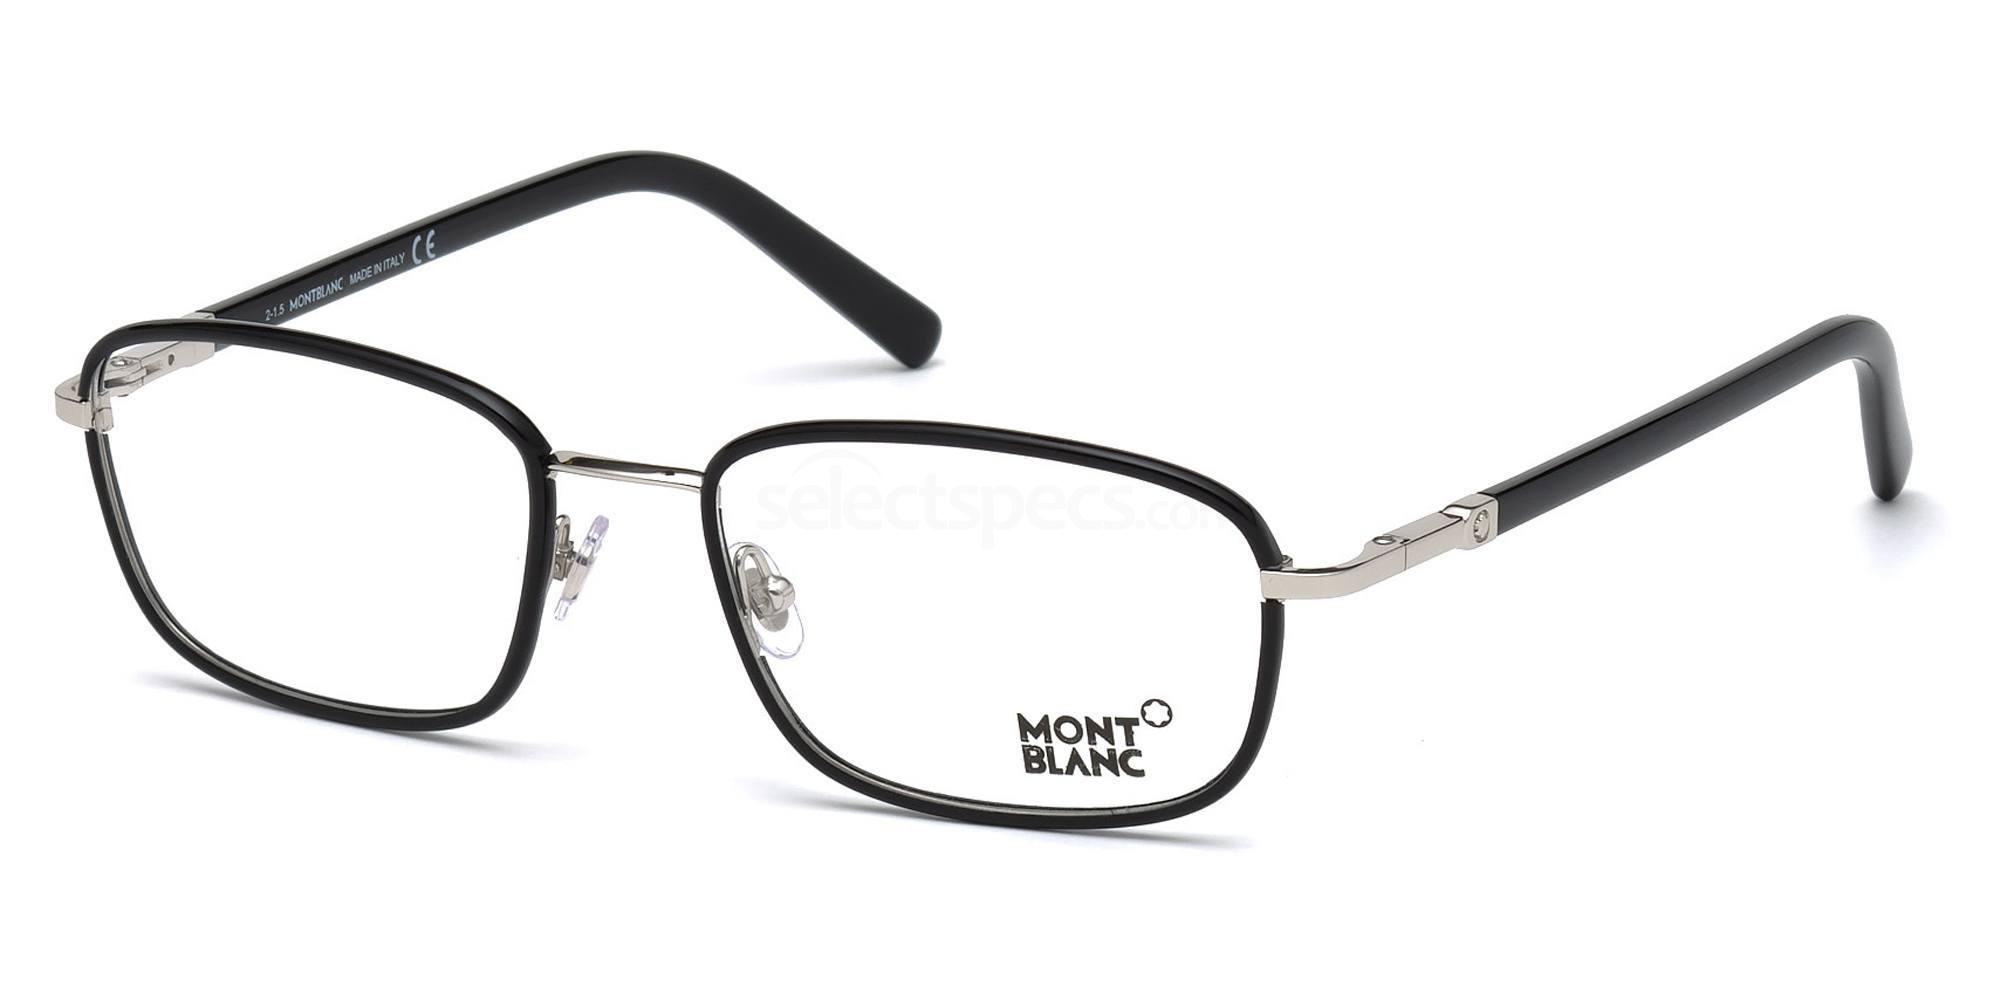 001 MB0556 Glasses, Mont Blanc